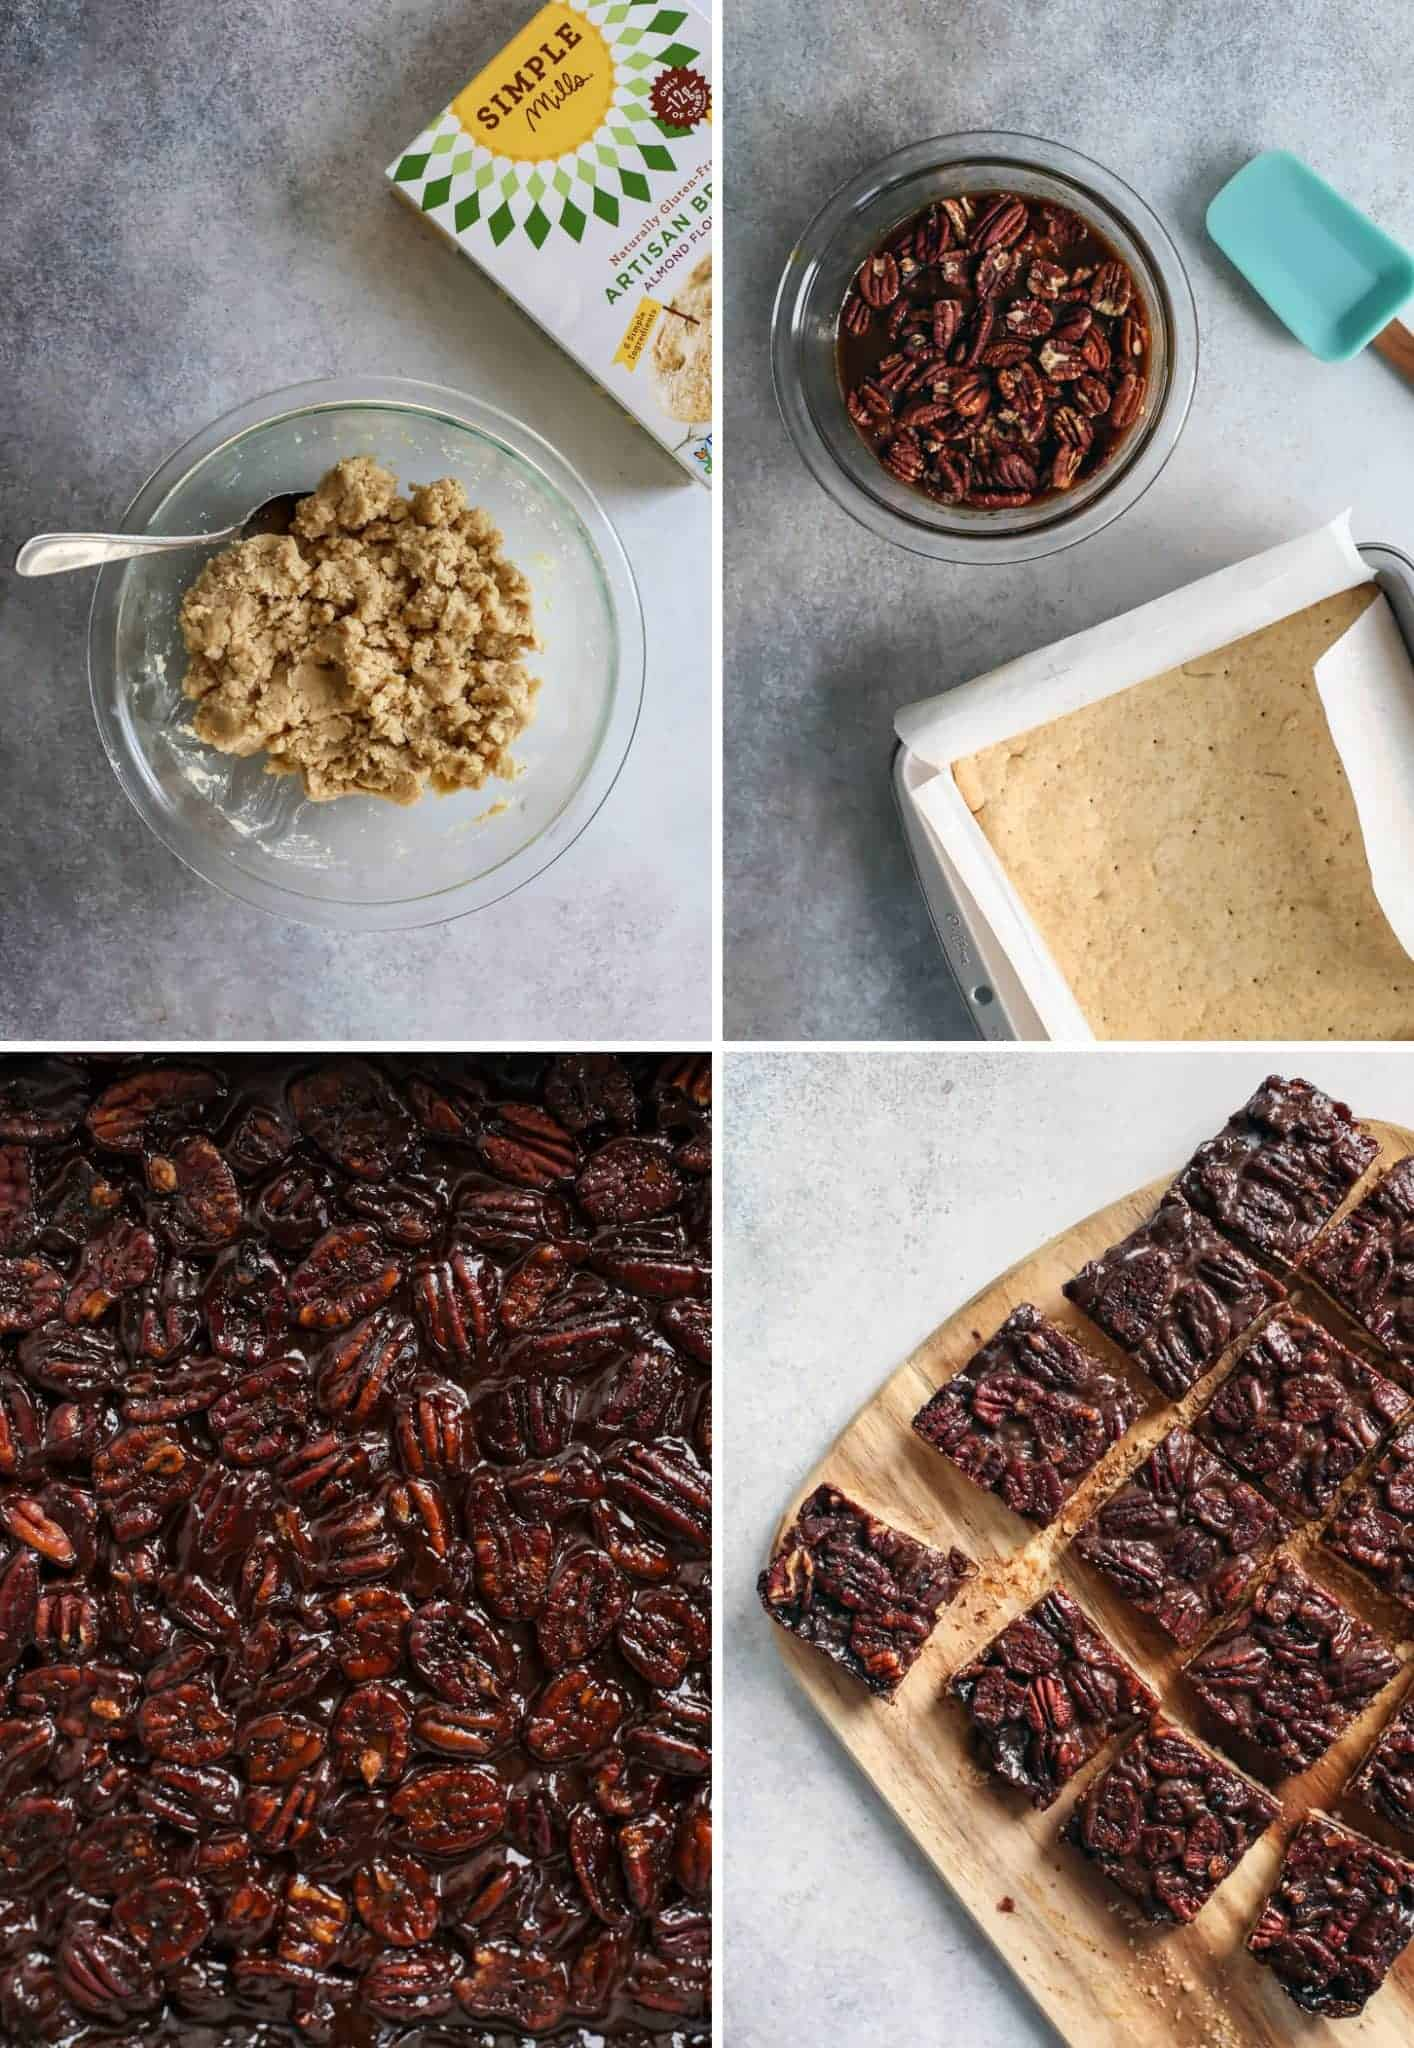 Vegan Paleo Pecan Pie Bars - The filling gets combined on the stovetop in a saucepan before adding onto the pre-baked crust. Then you bake the bars until the filling has set and you let the bars cool at room temperature before chilling them in the fridge. Letting the bars cool *completely* will ensure your bars hold up when cutting into squares.